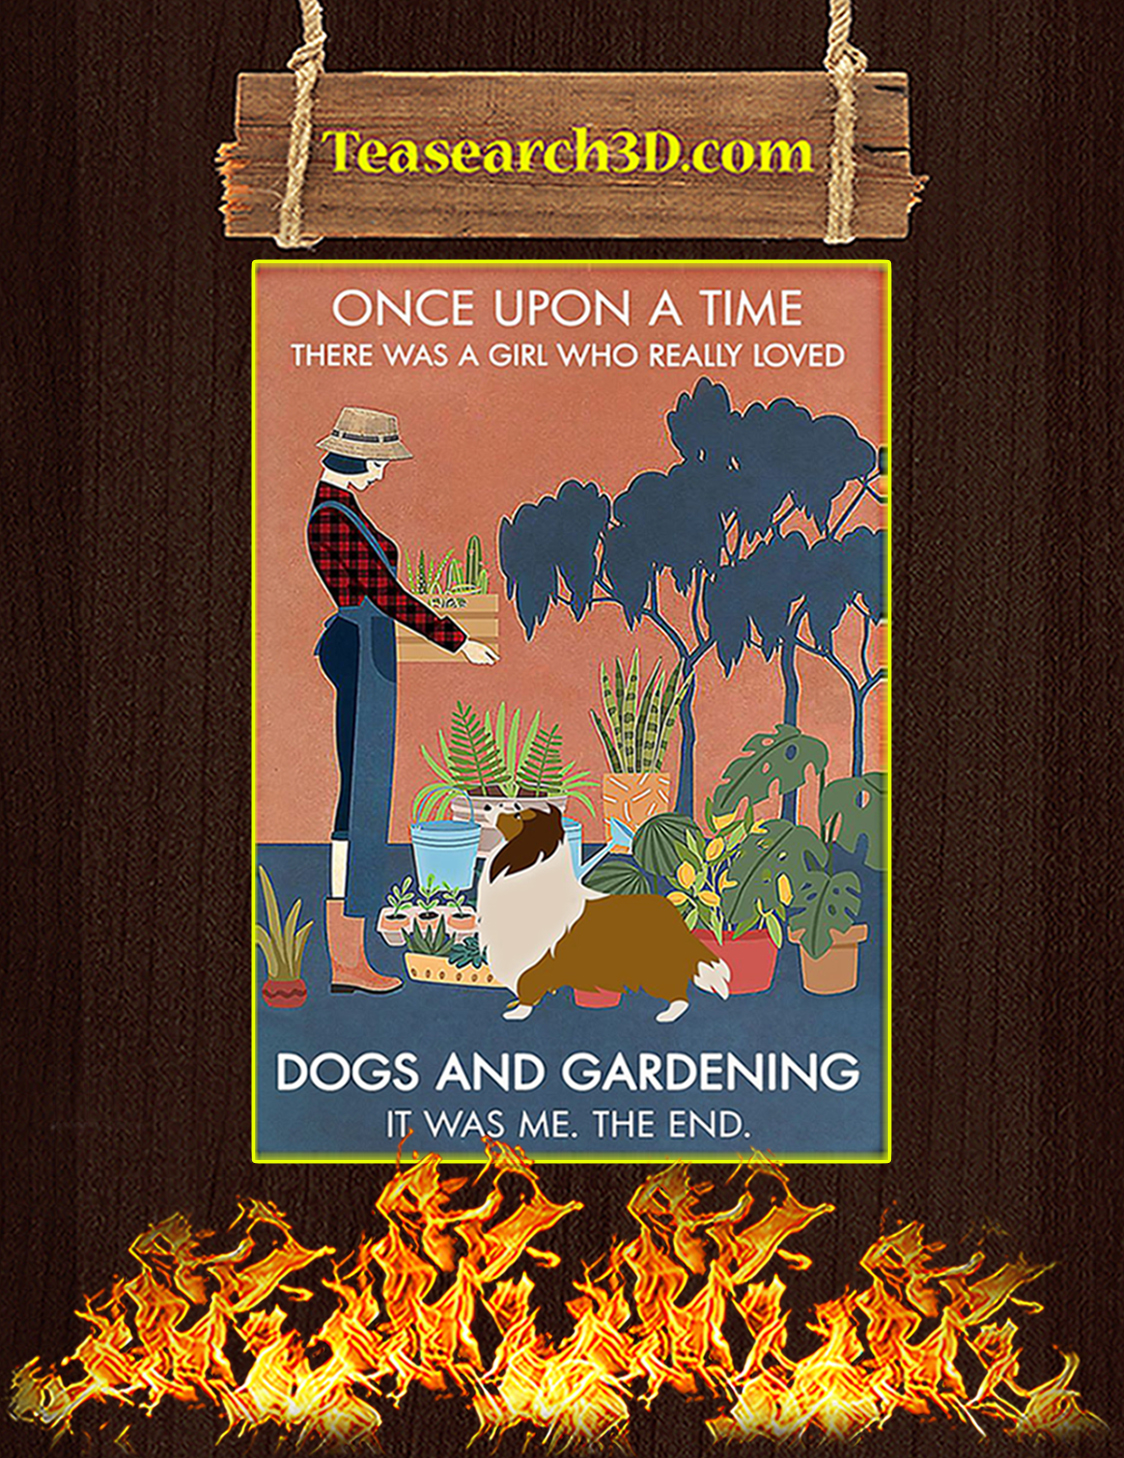 Shetland Sheepdog One upon a time there was a girl loved dogs and gardening poster A3